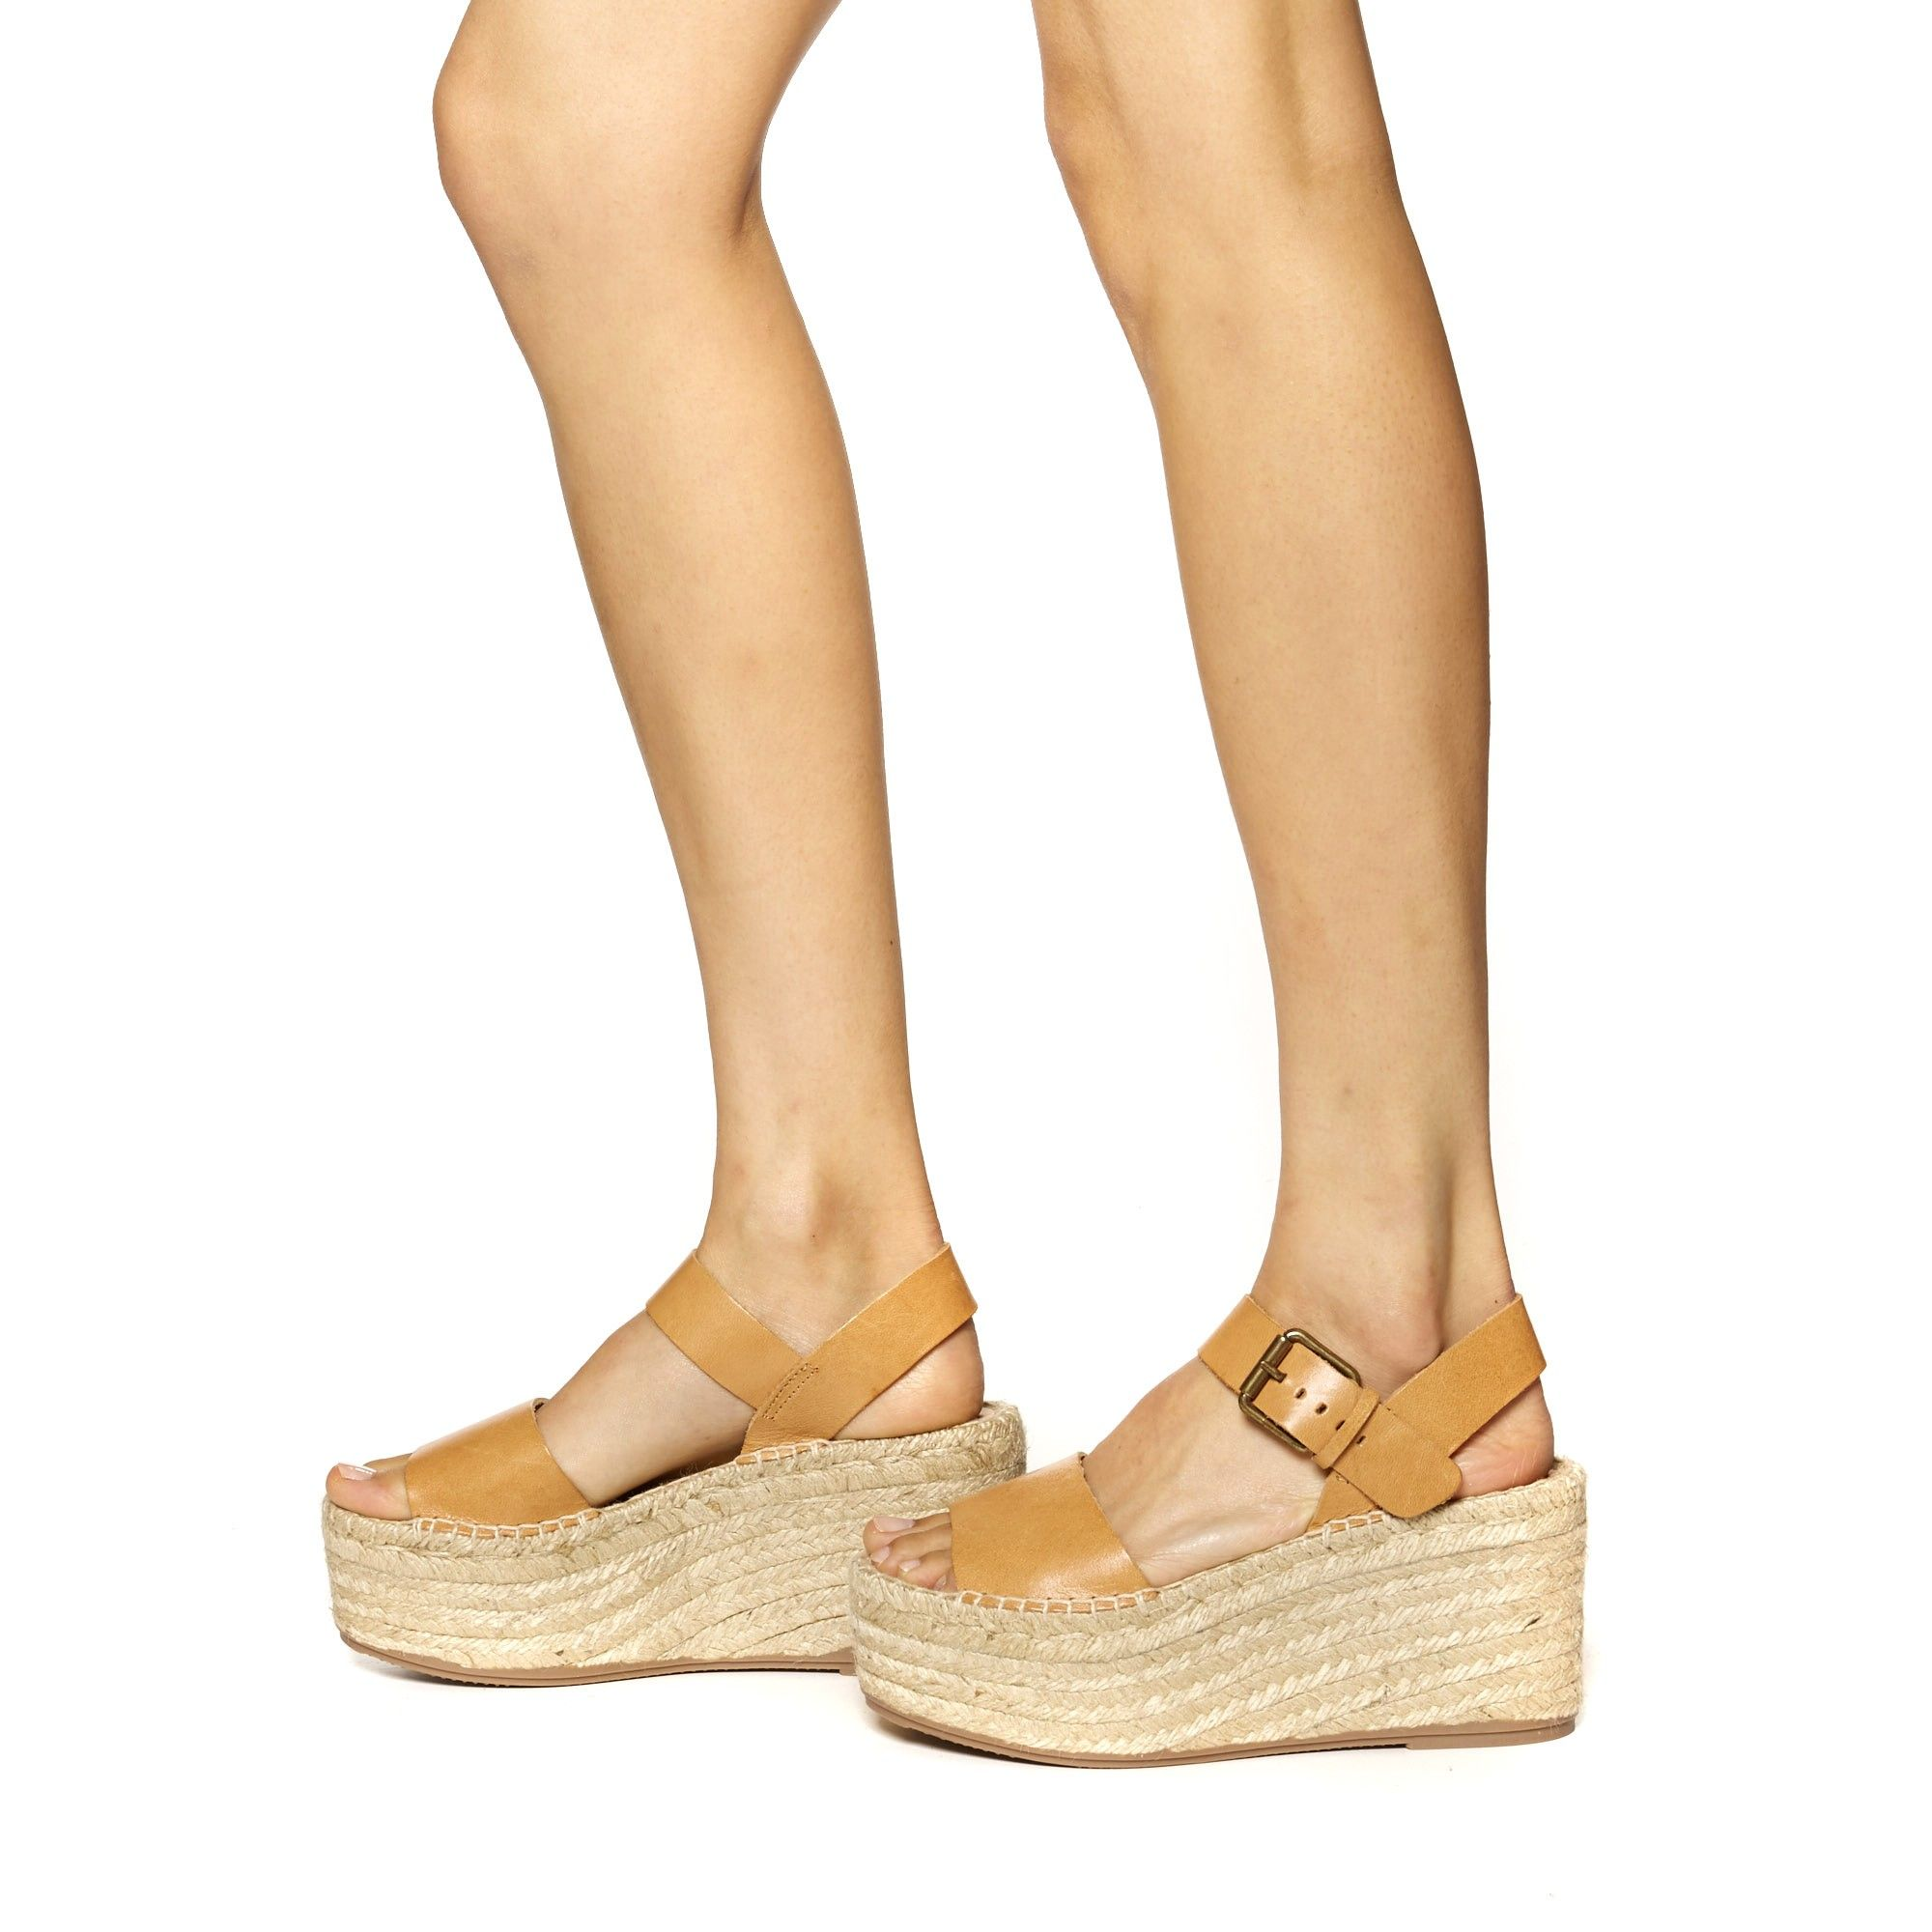 d943a3634da8 Soludos Minorca High Platform Sandal in Nude Leather - Soludos Espadrilles